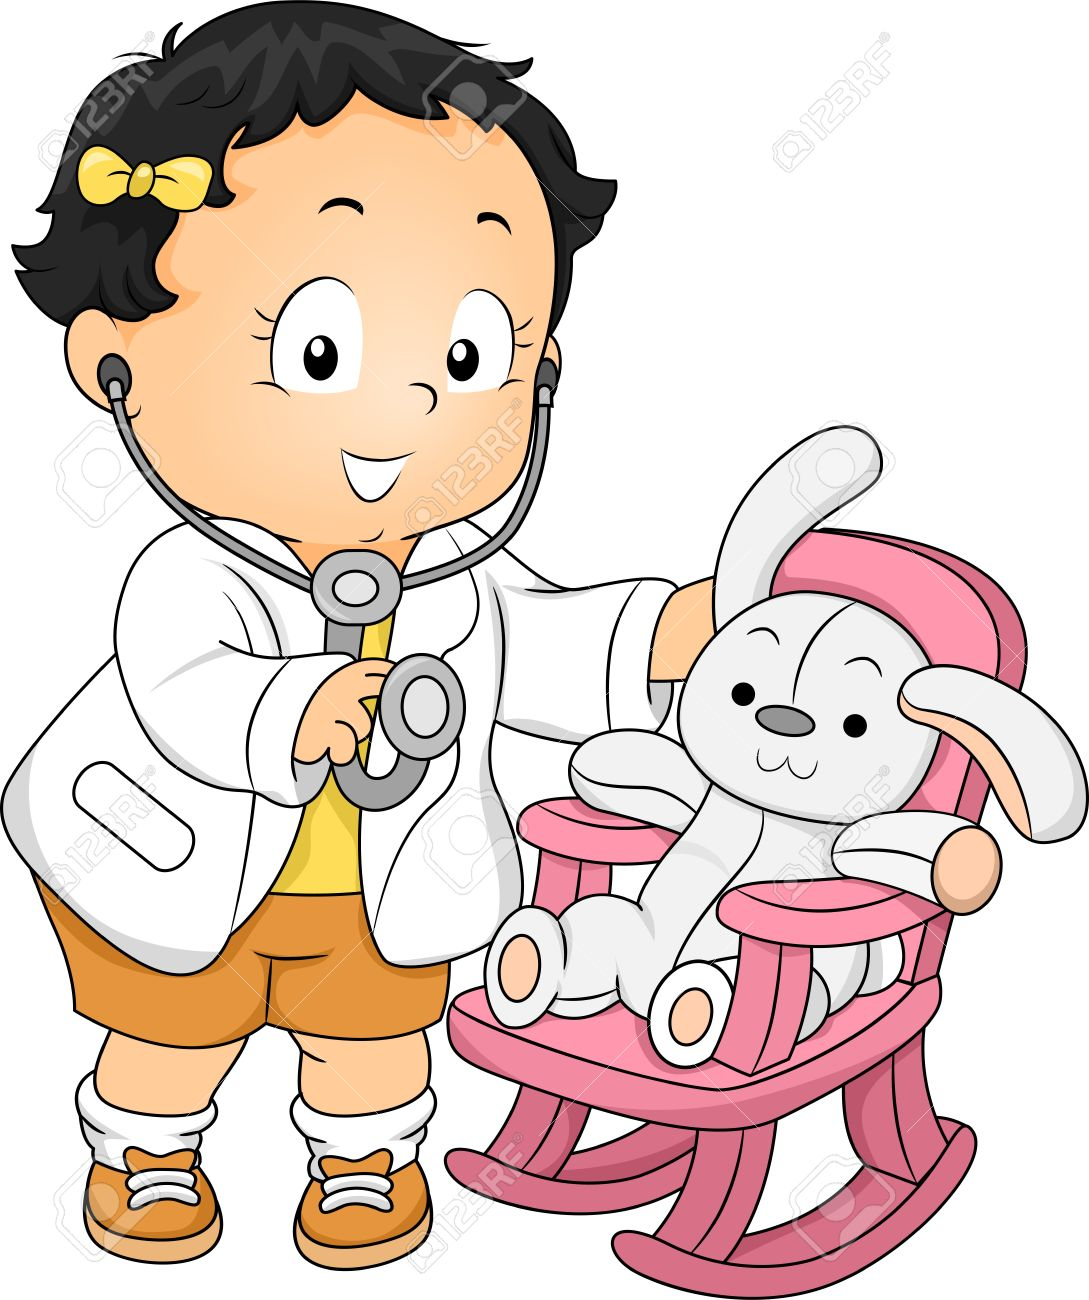 Illustration of a Toddler Girl dressed as a Doctor with his Plush Bunny Patient Stock Illustration - 19253813